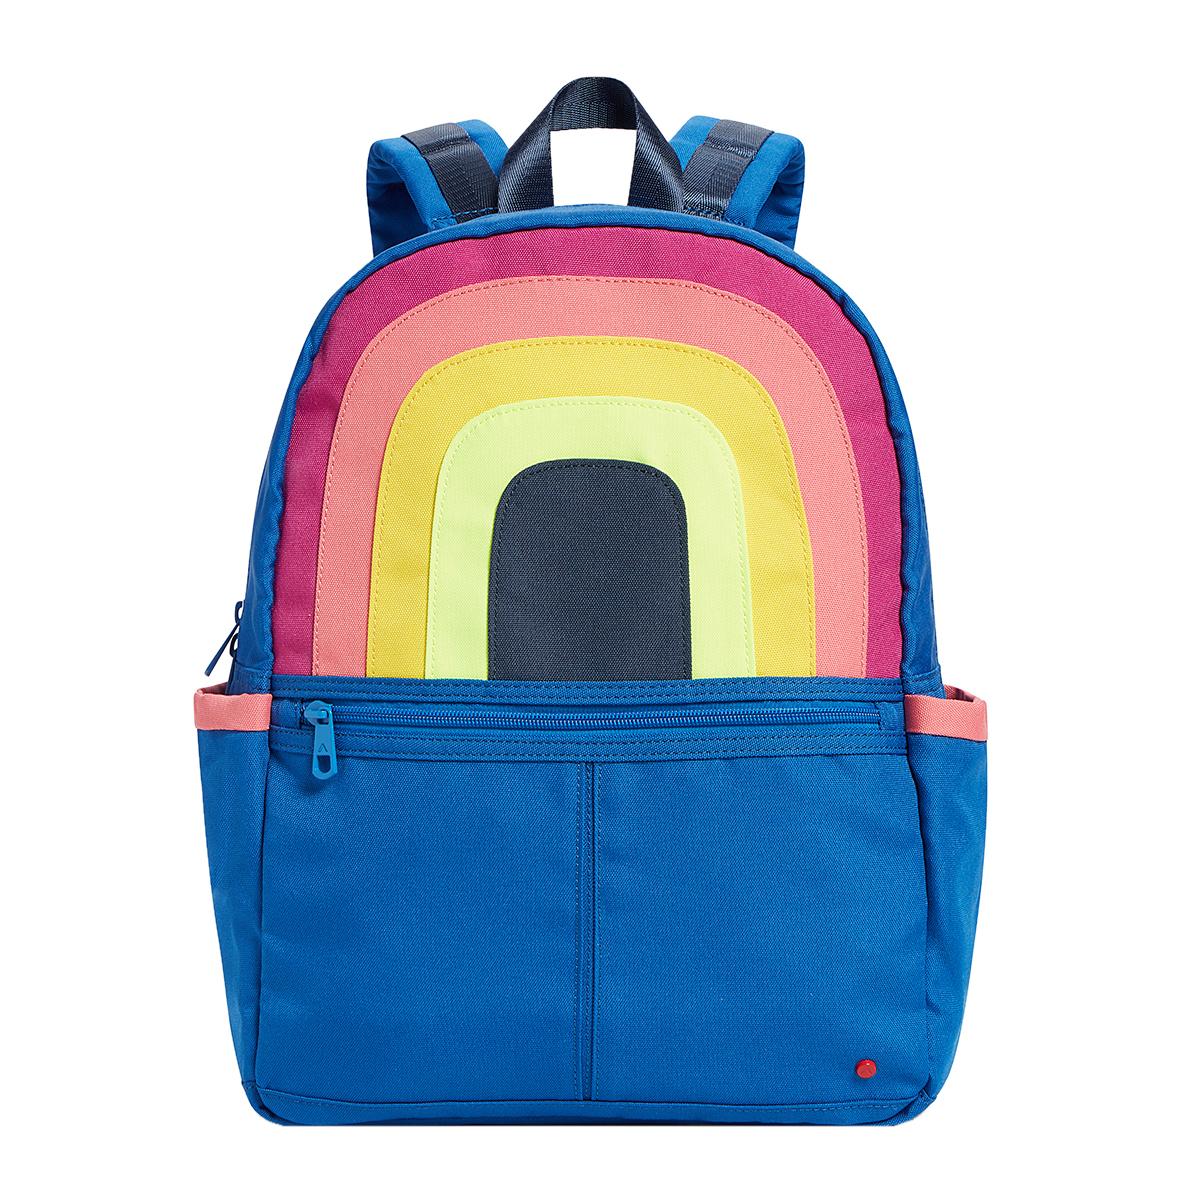 State Bags Kane Color Block Backpack in Rainbow